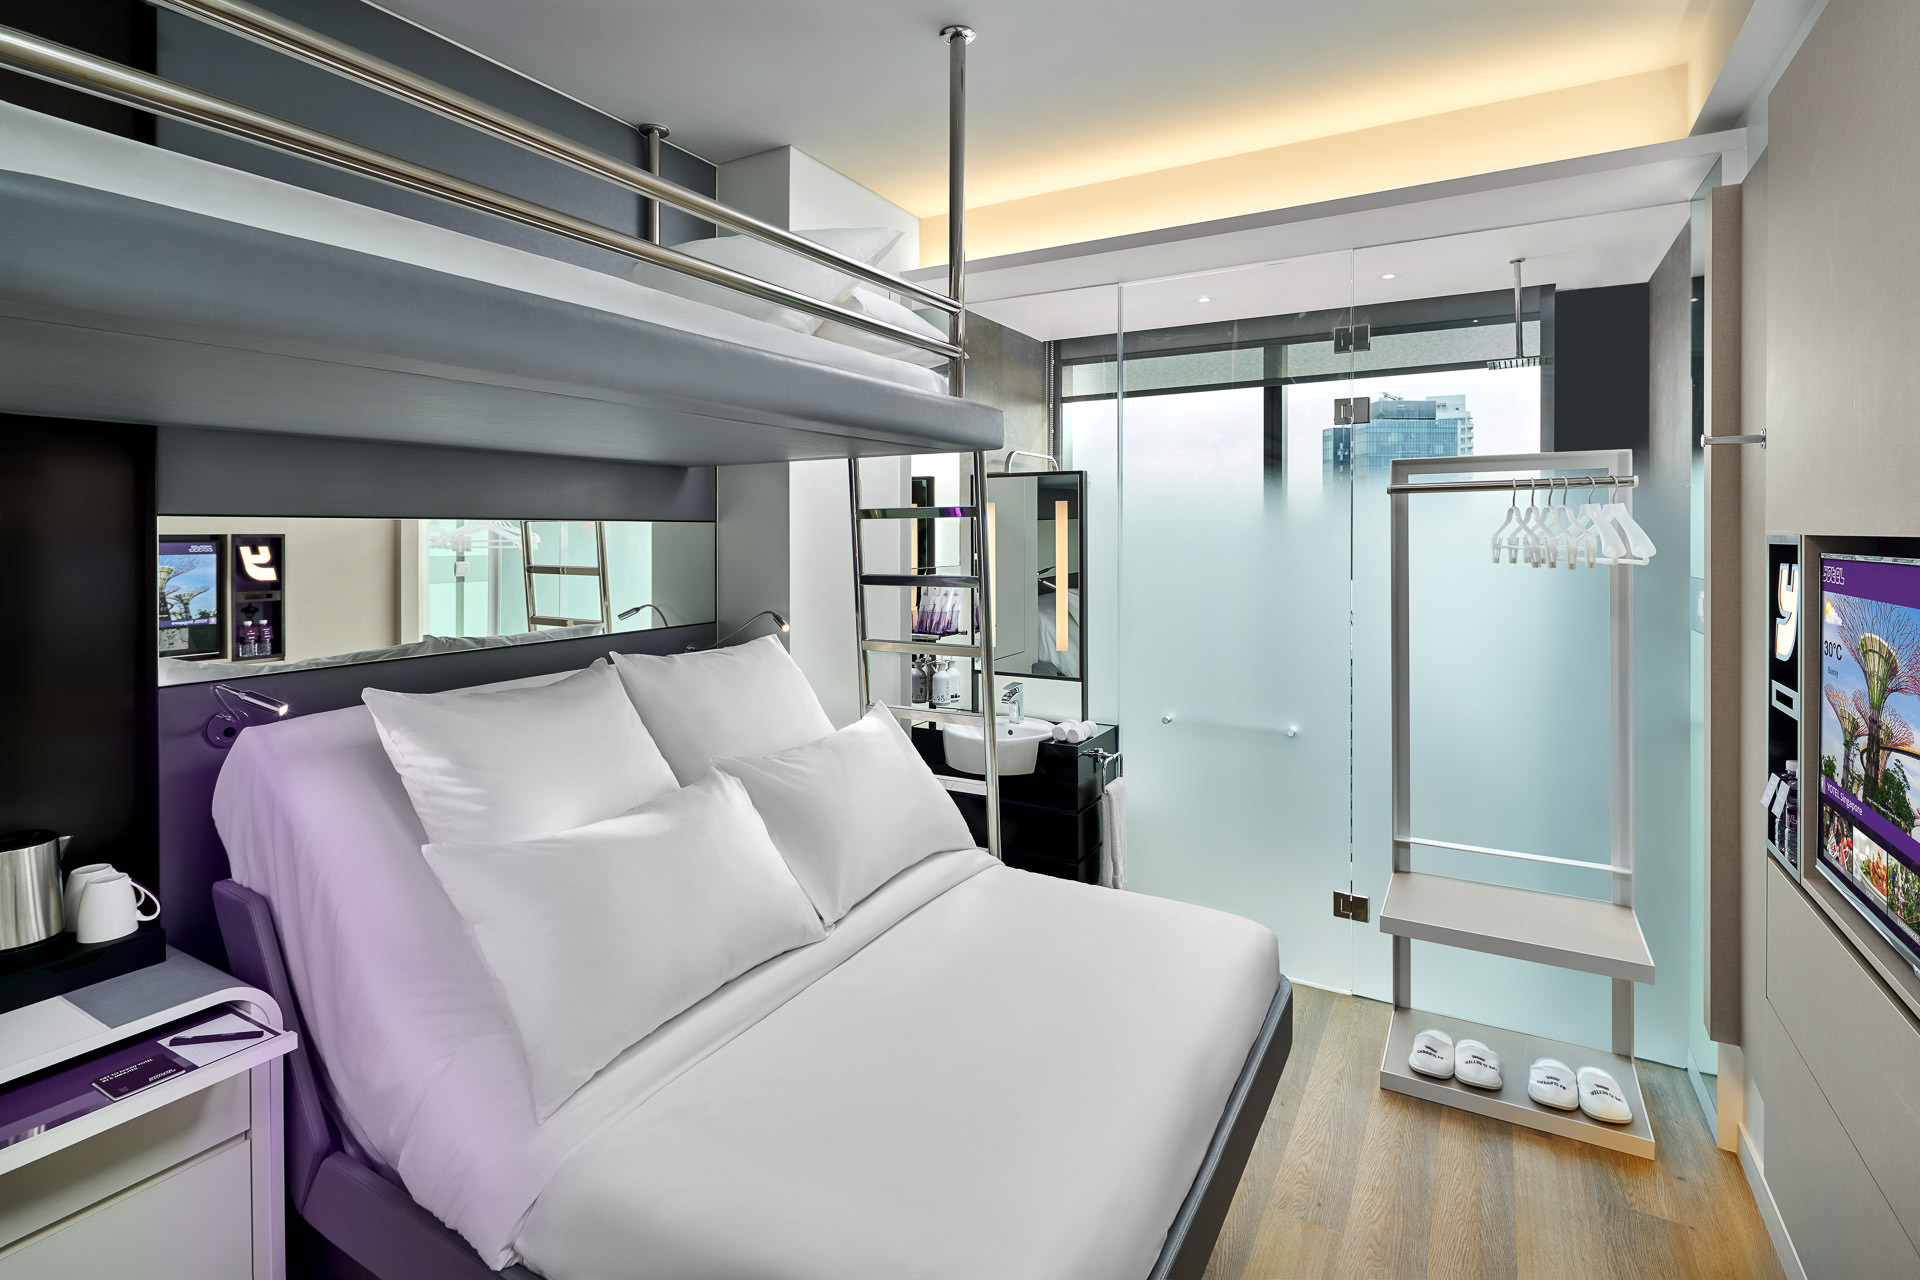 Interior photography of queen bunk rooms at yotel in singapore with bunk bed and ladder